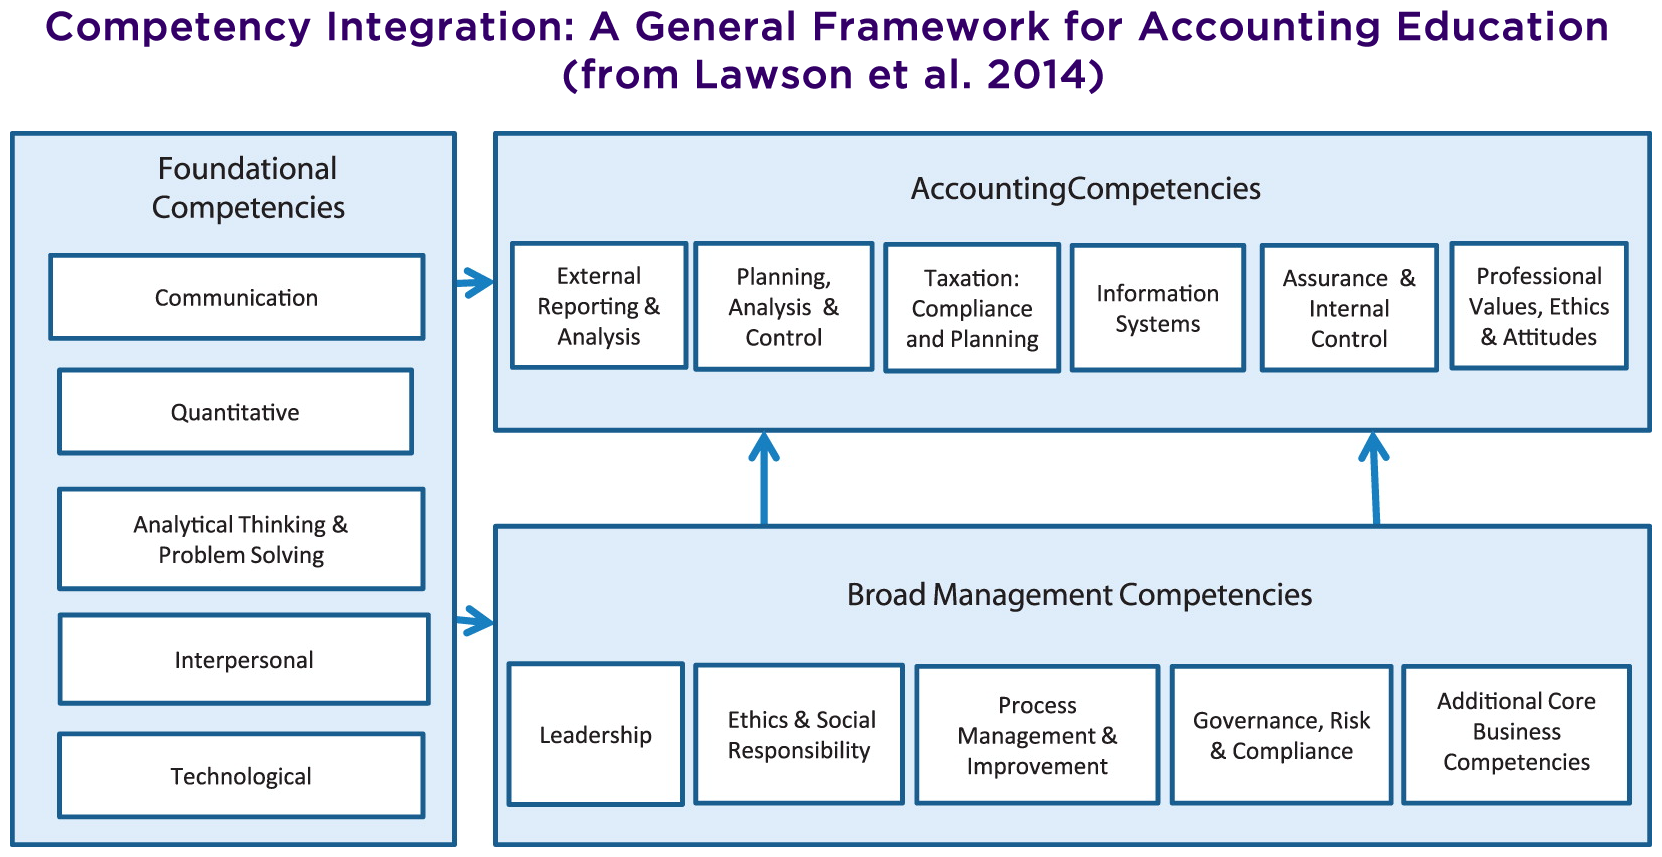 IMA-AAA Integrated Competency-Based Framework